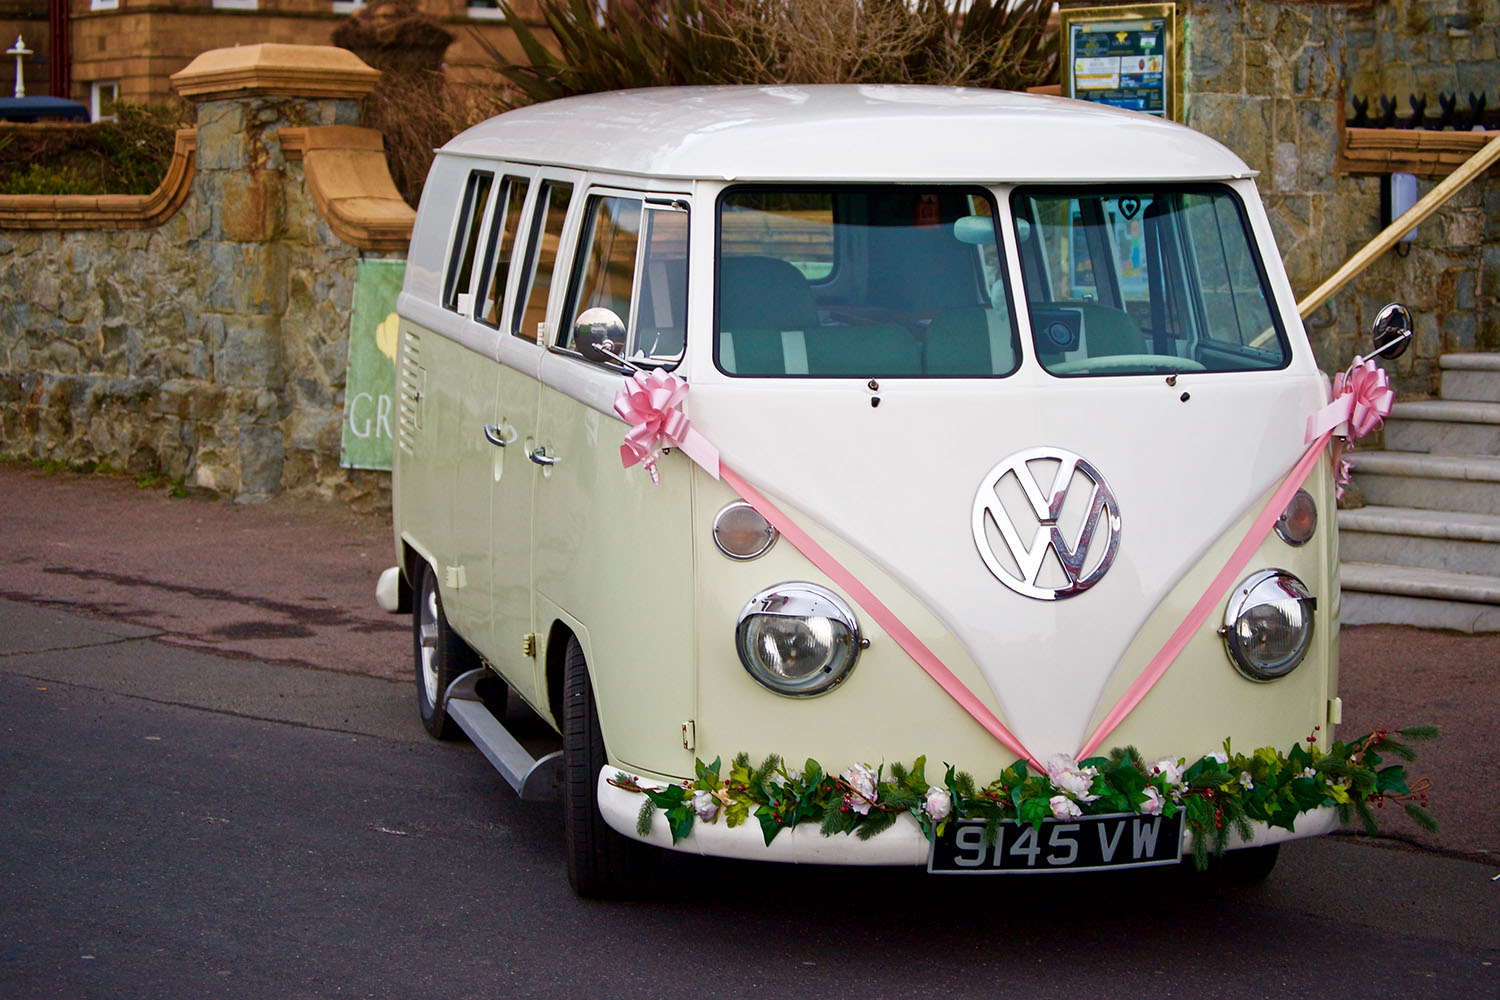 Wedding Transportation Ideas For Hitting The Road As Newlyweds